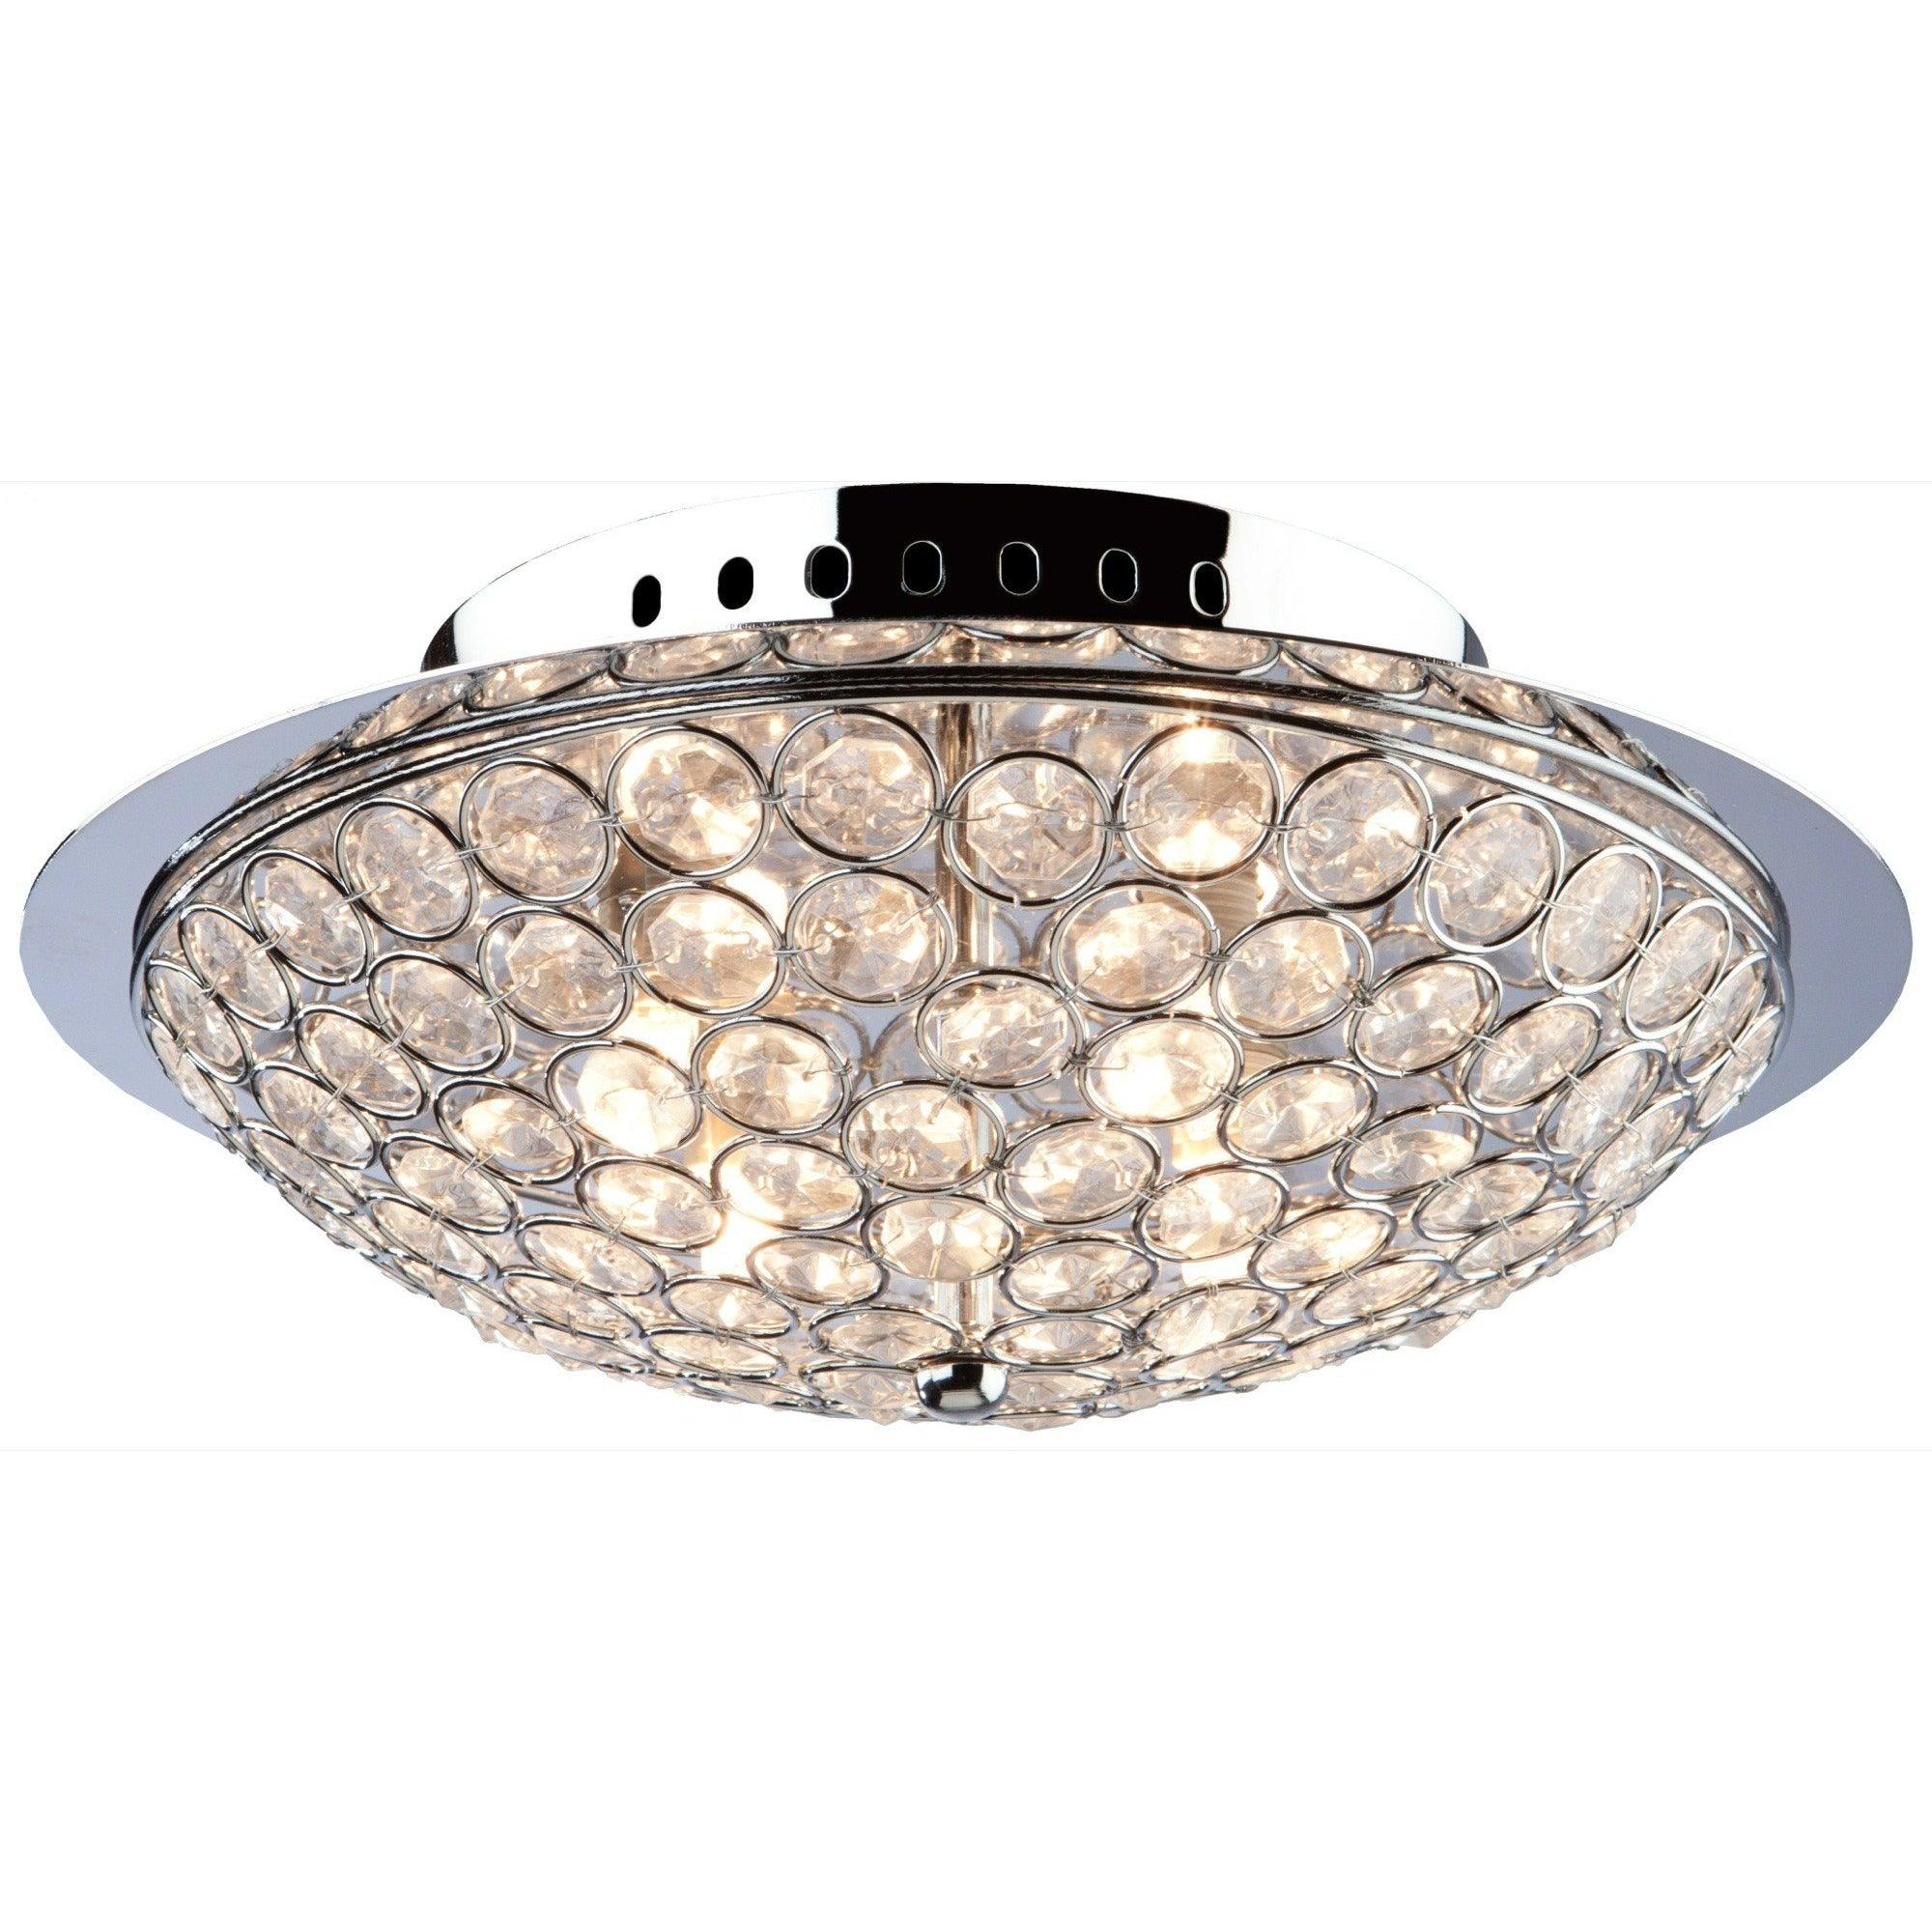 Artcraft Lighting - AC10100 - Three Light Flush Mount - Gage Park - Chrome